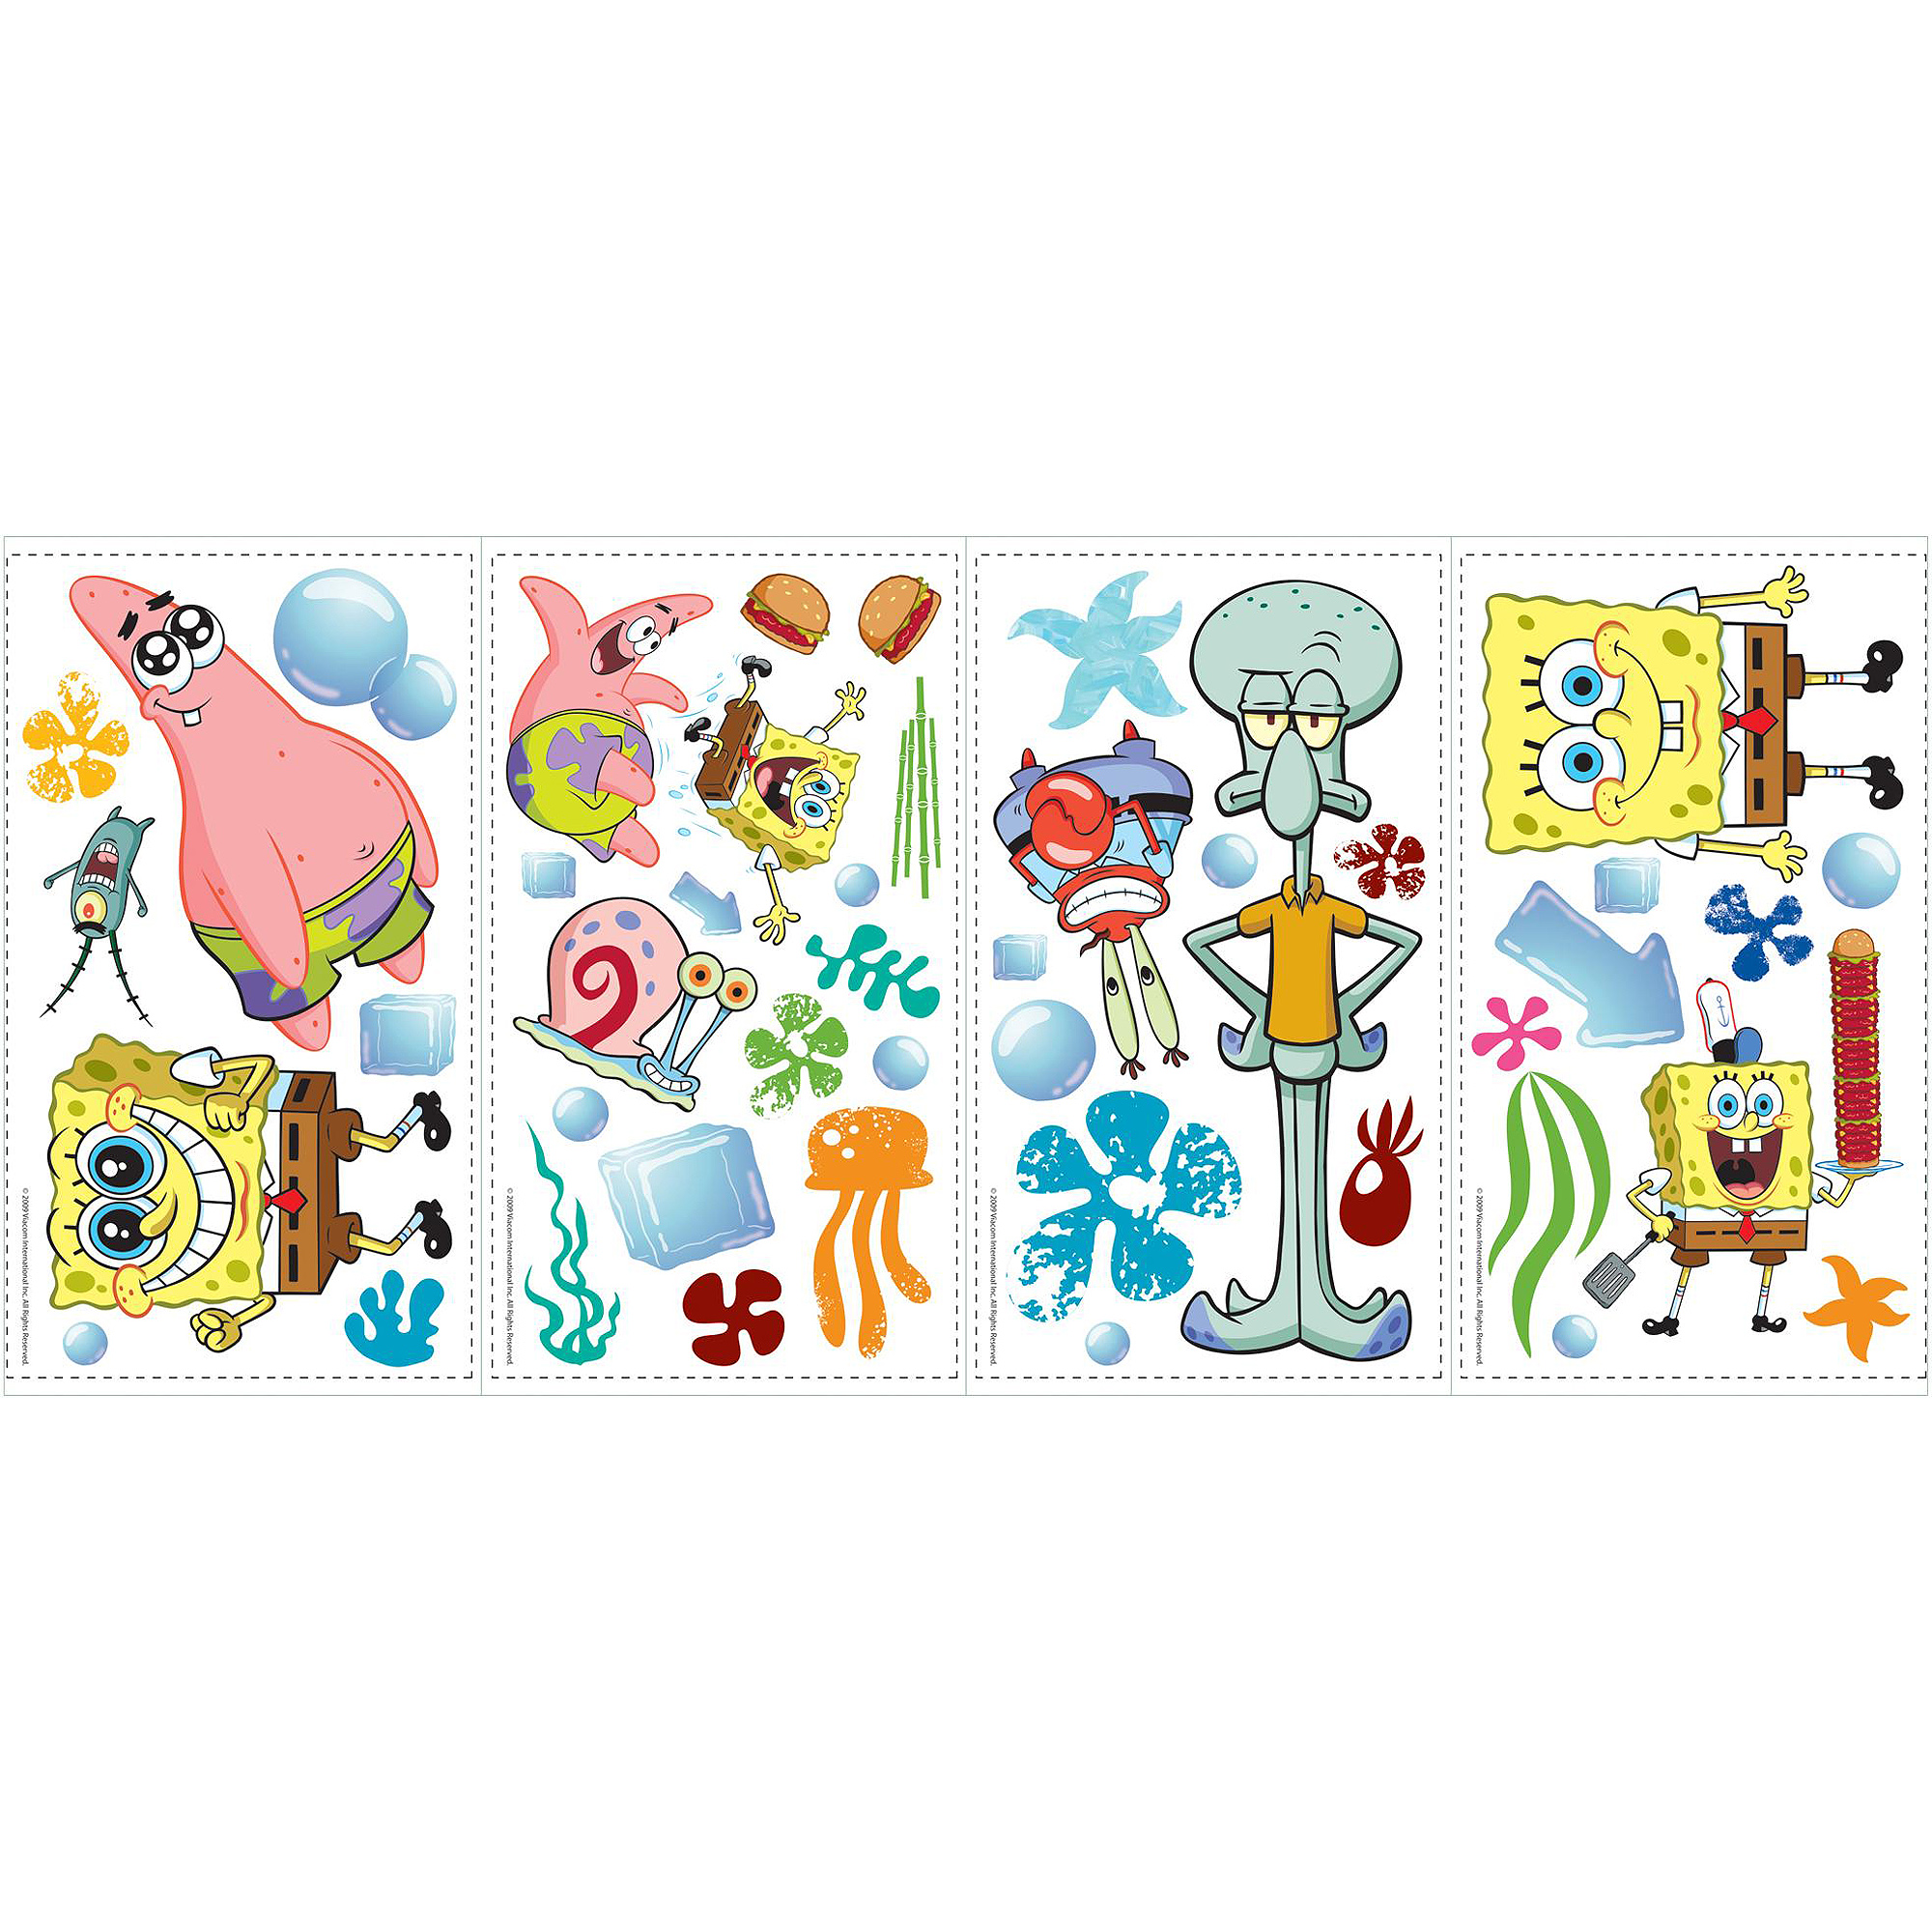 RoomMates SpongeBob SquarePants Peel And Stick Wall Decals - Spongebob room decals